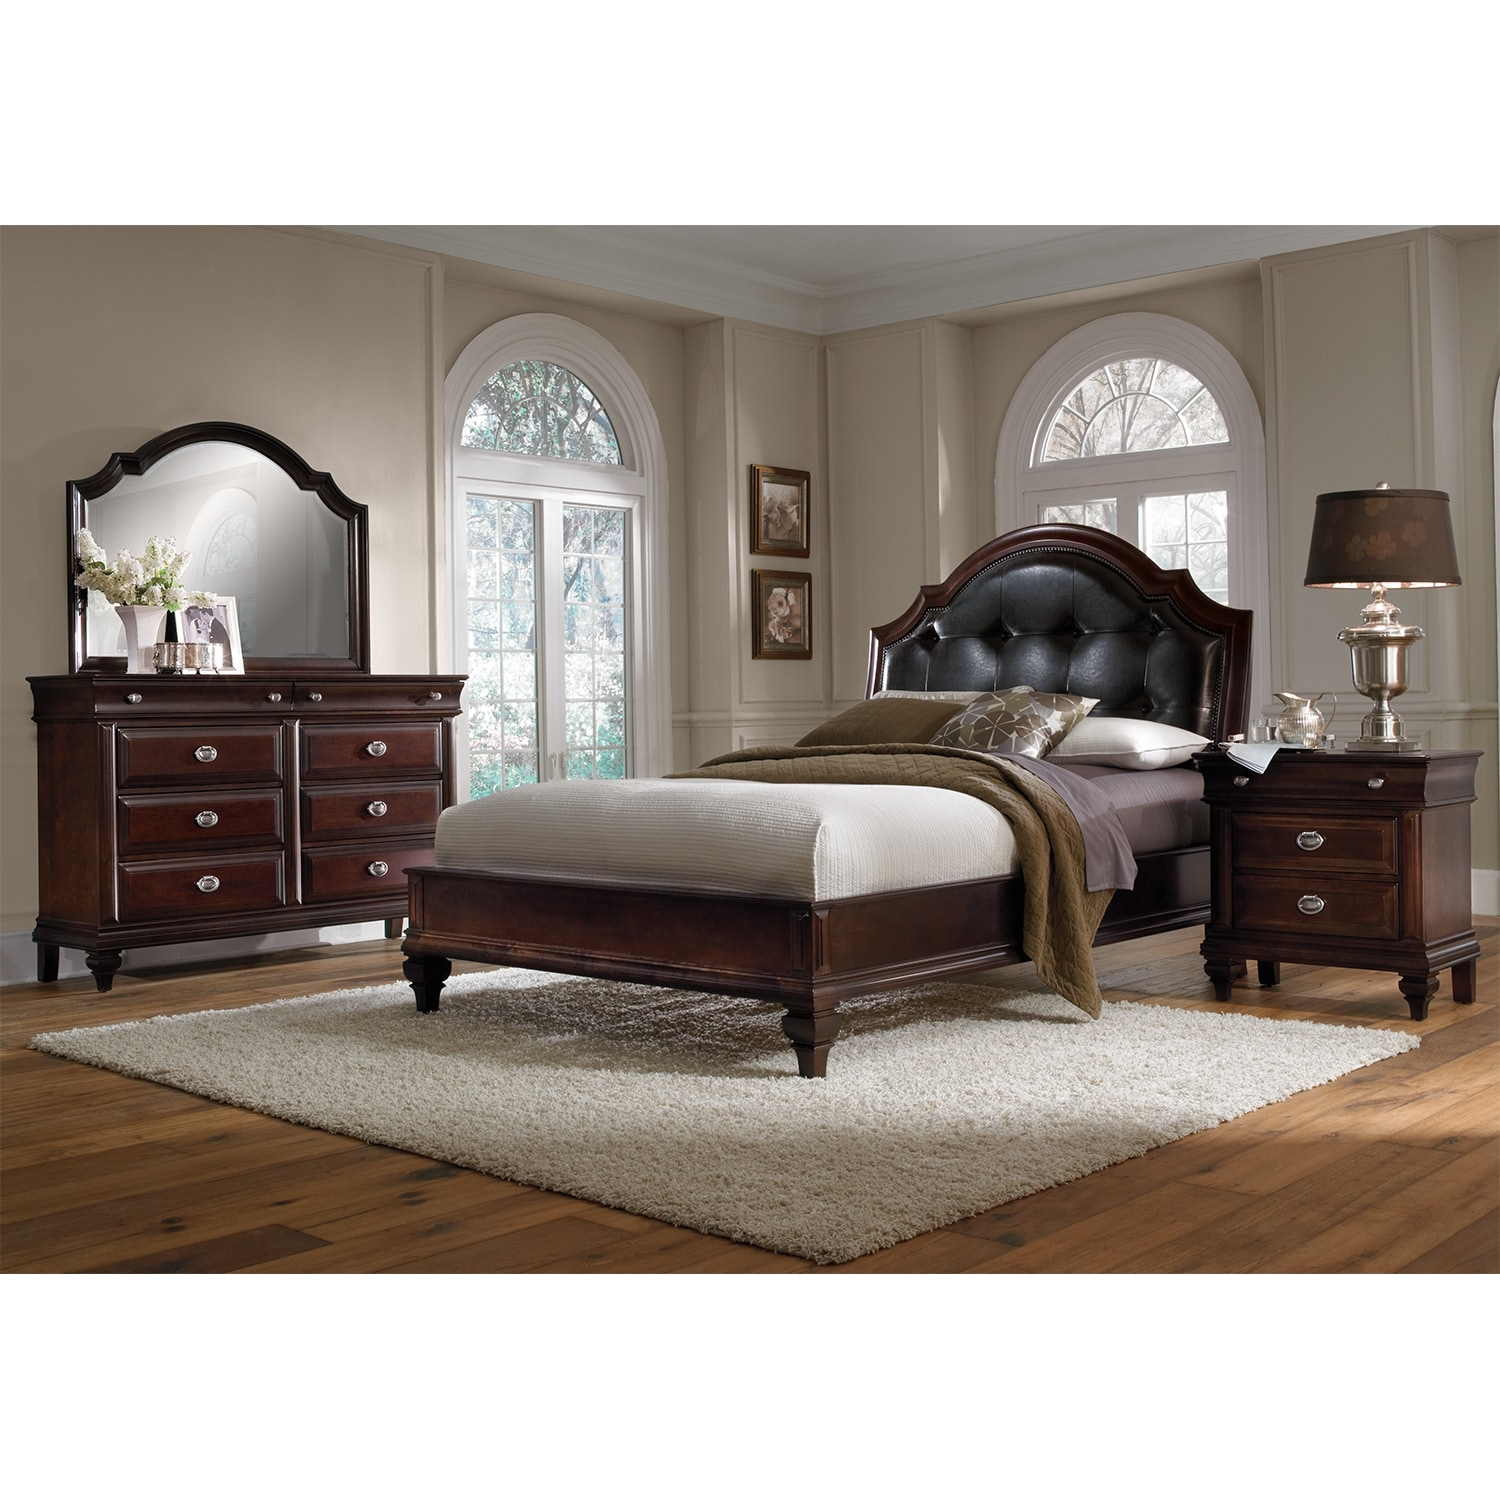 Manhattan 6 Piece Queen Bedroom Set Cherry By Pulaski Bedroom Furniture Manhattan 6 Piece Queen Bedroom Set